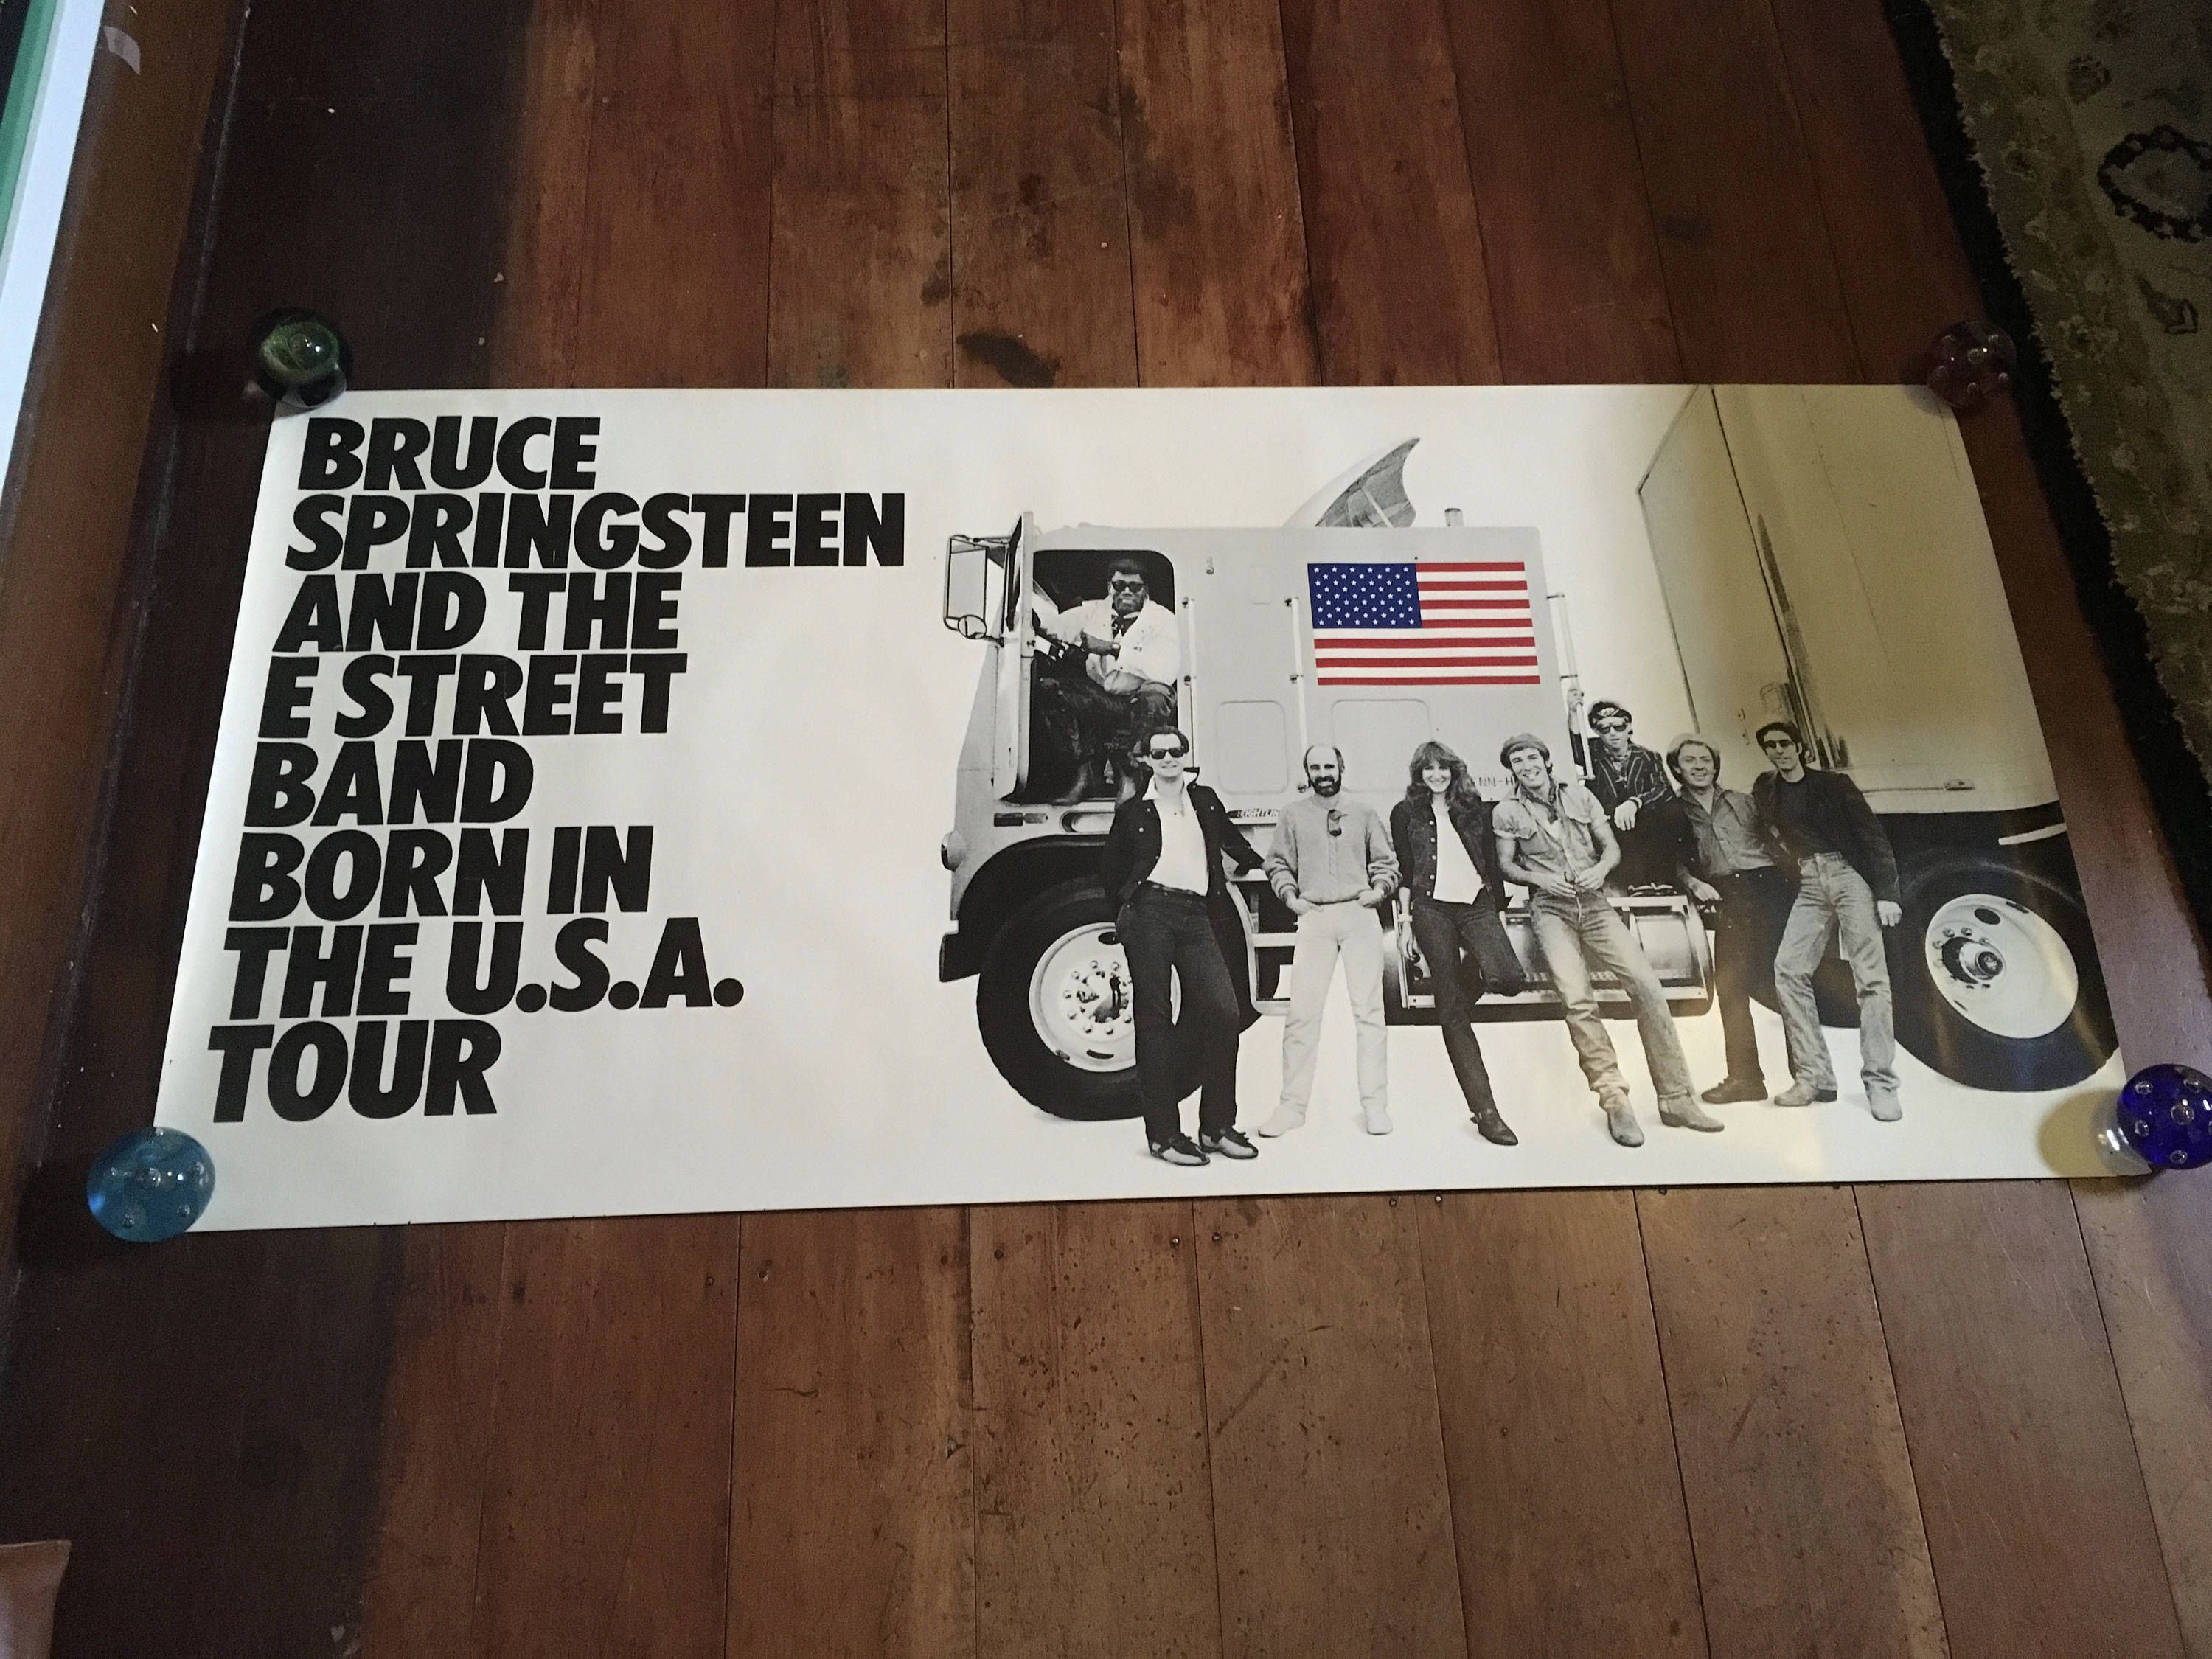 Bruce Springsteen The E Street Band Born In The U S A Tour 1984